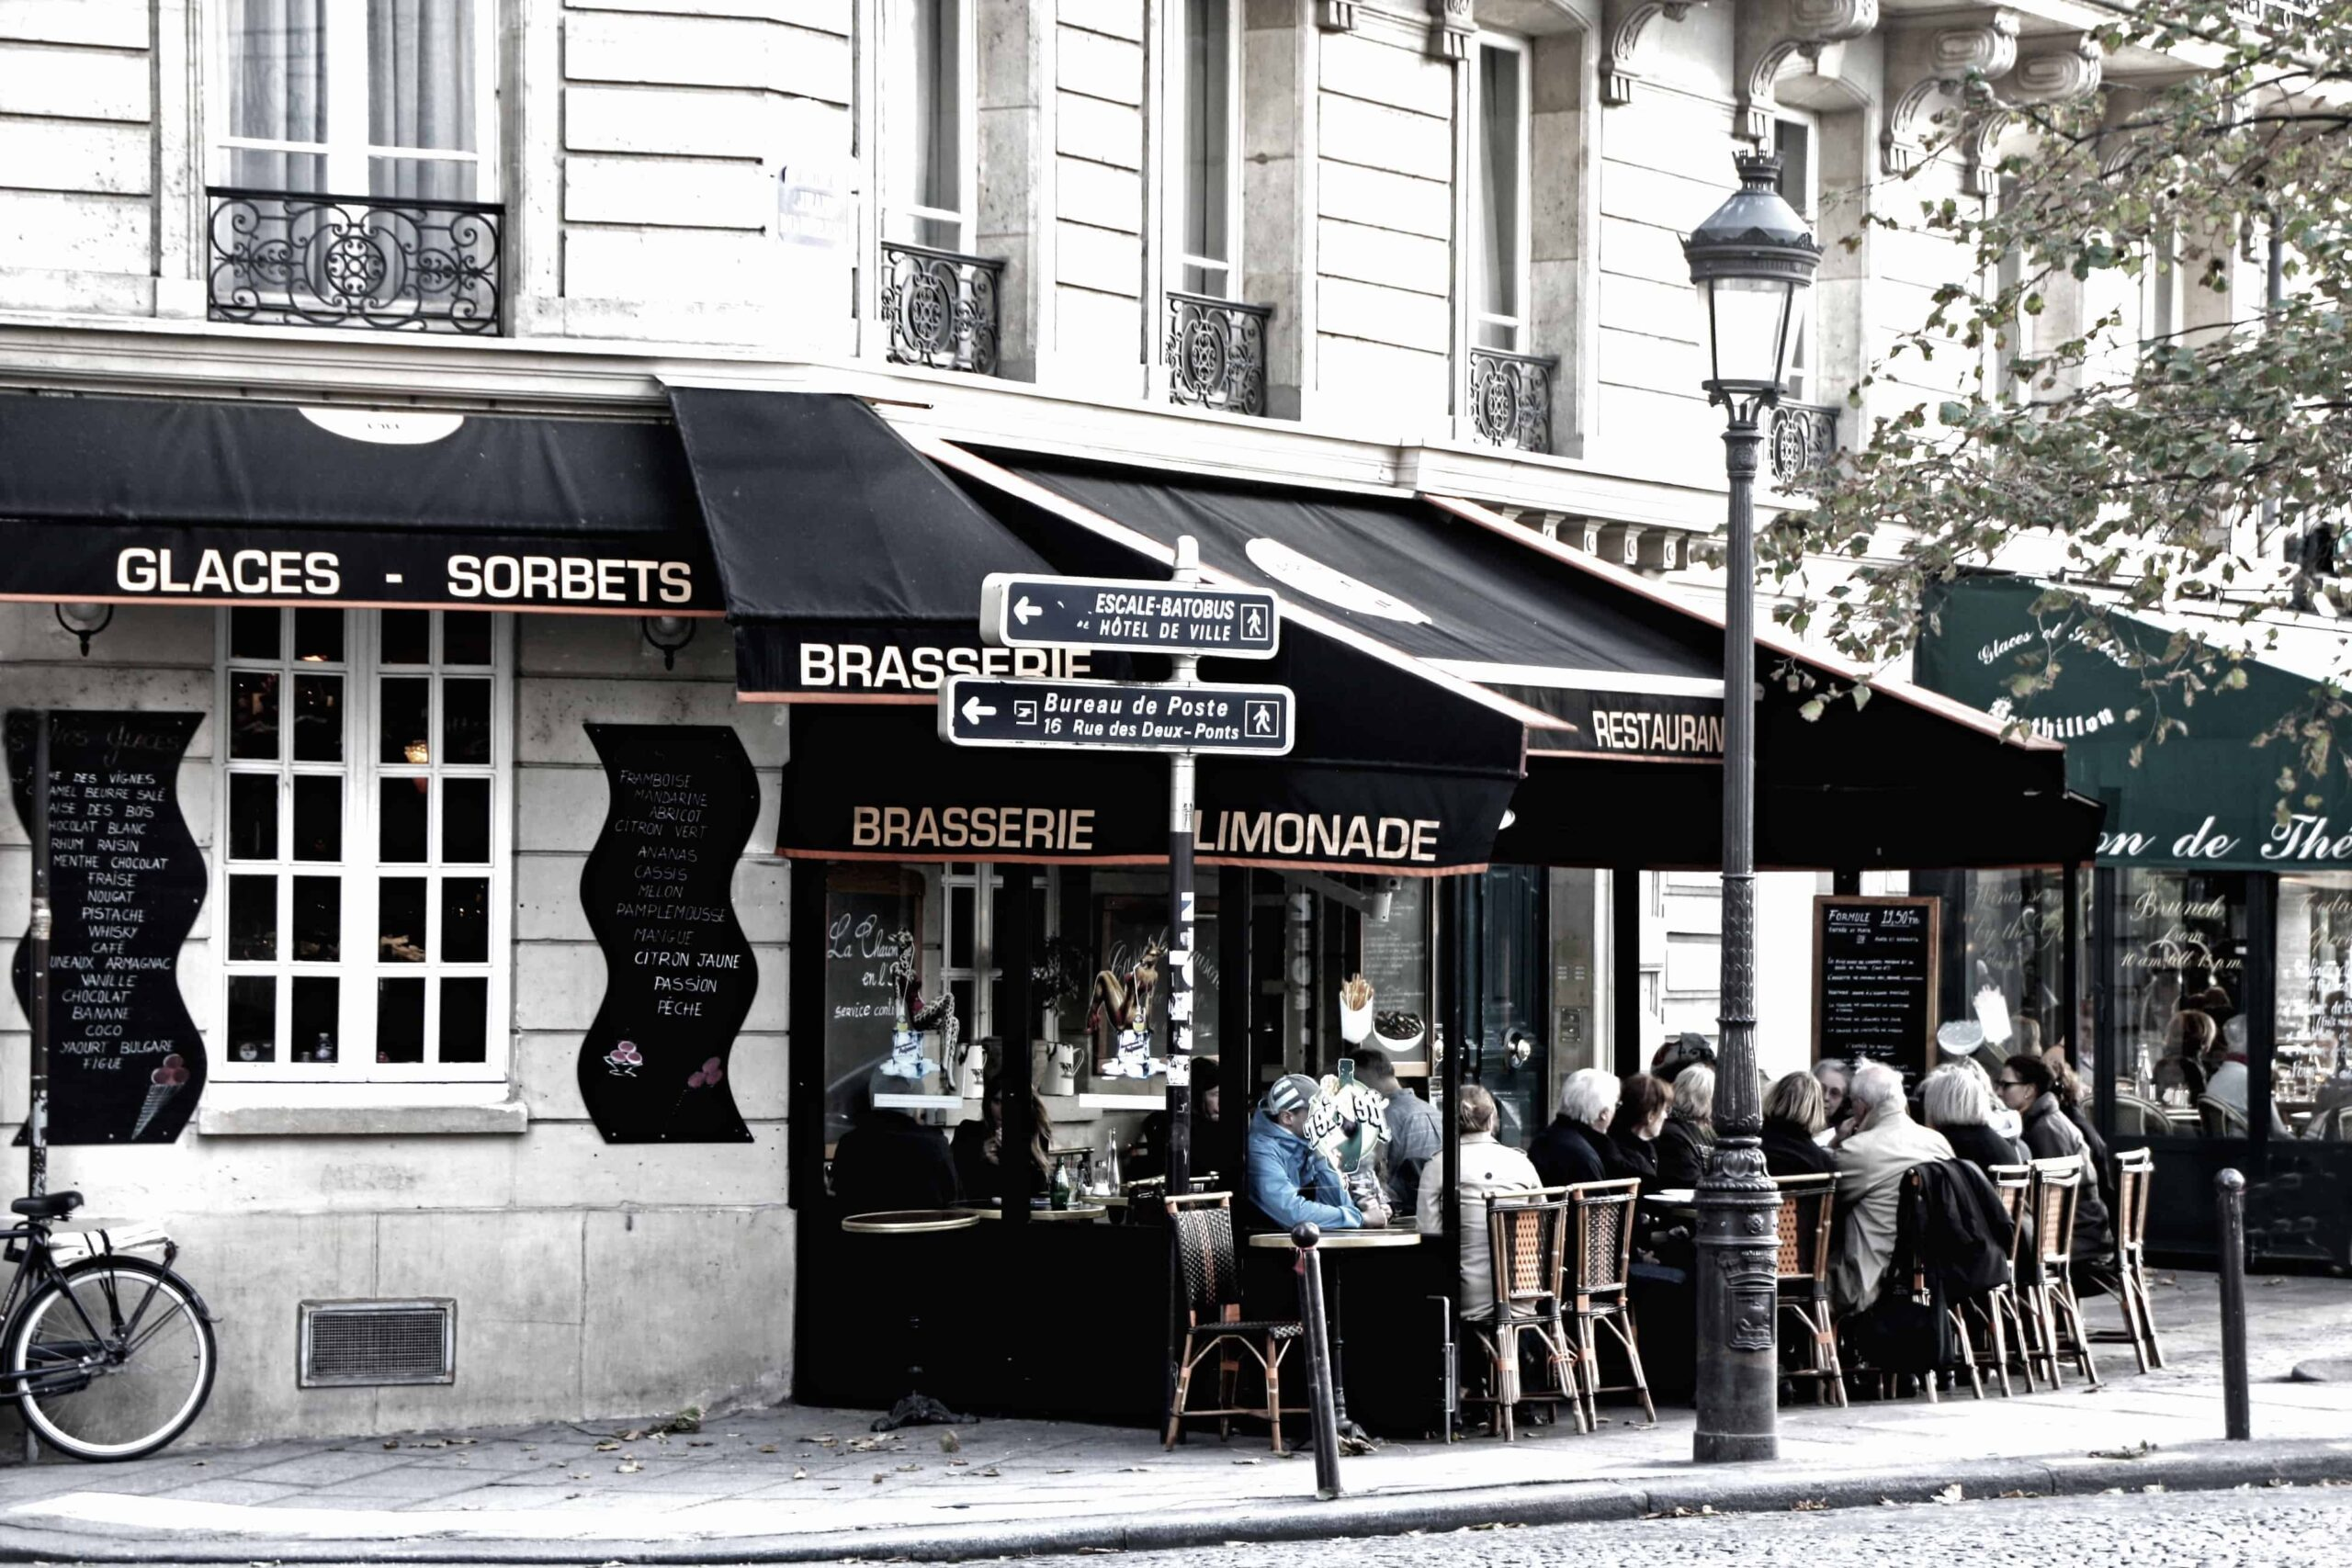 View of a bistro in the streets of Paris.